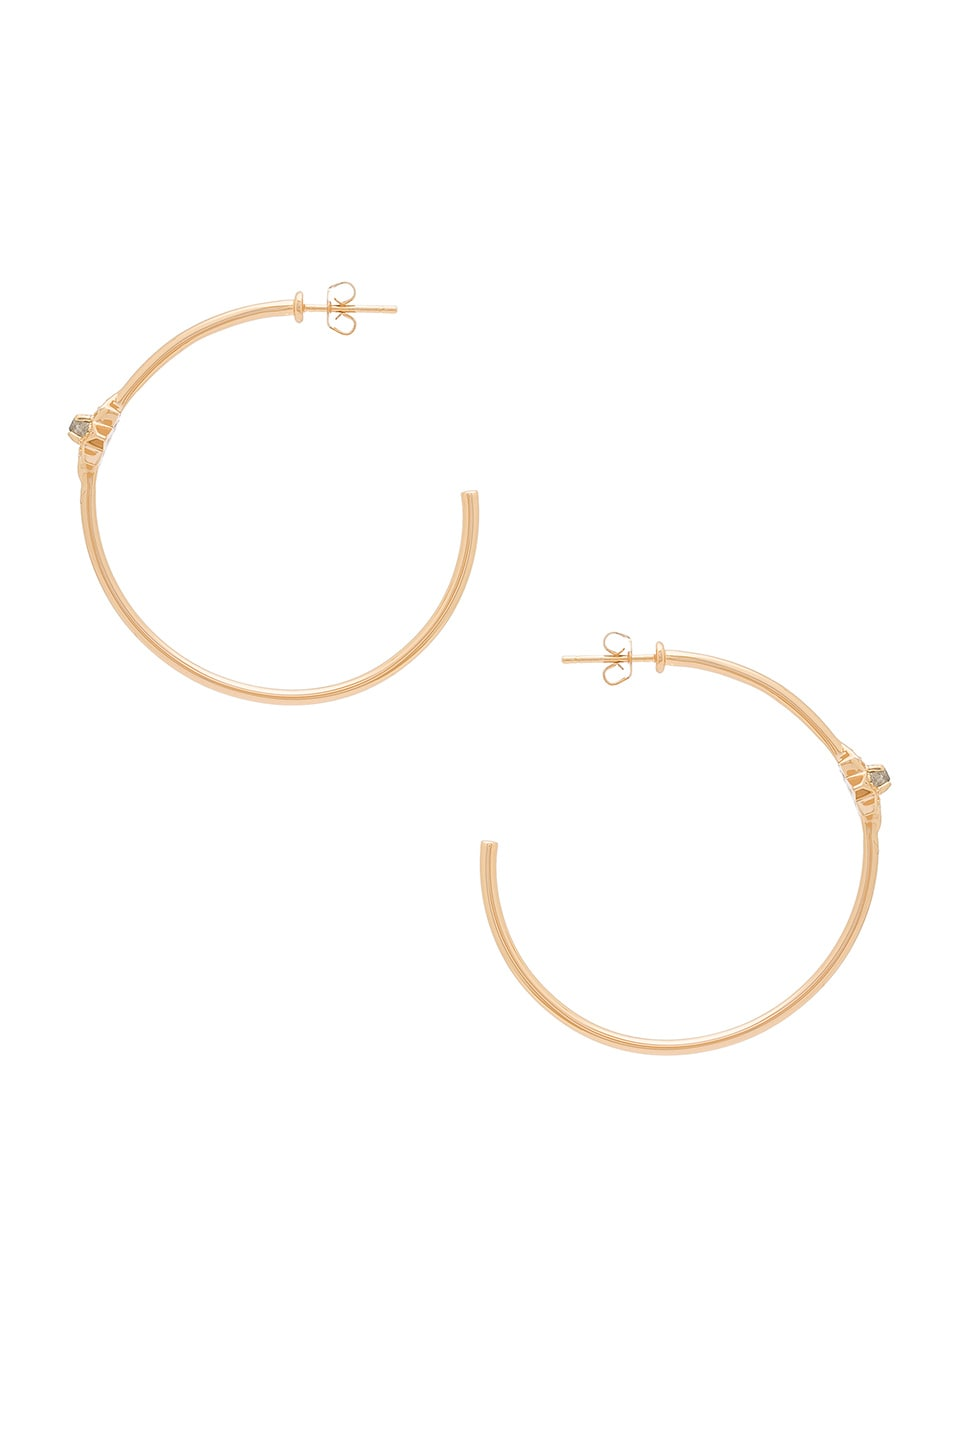 Melanie Auld Starburst Hoop Earrings in Labradorite & Gold